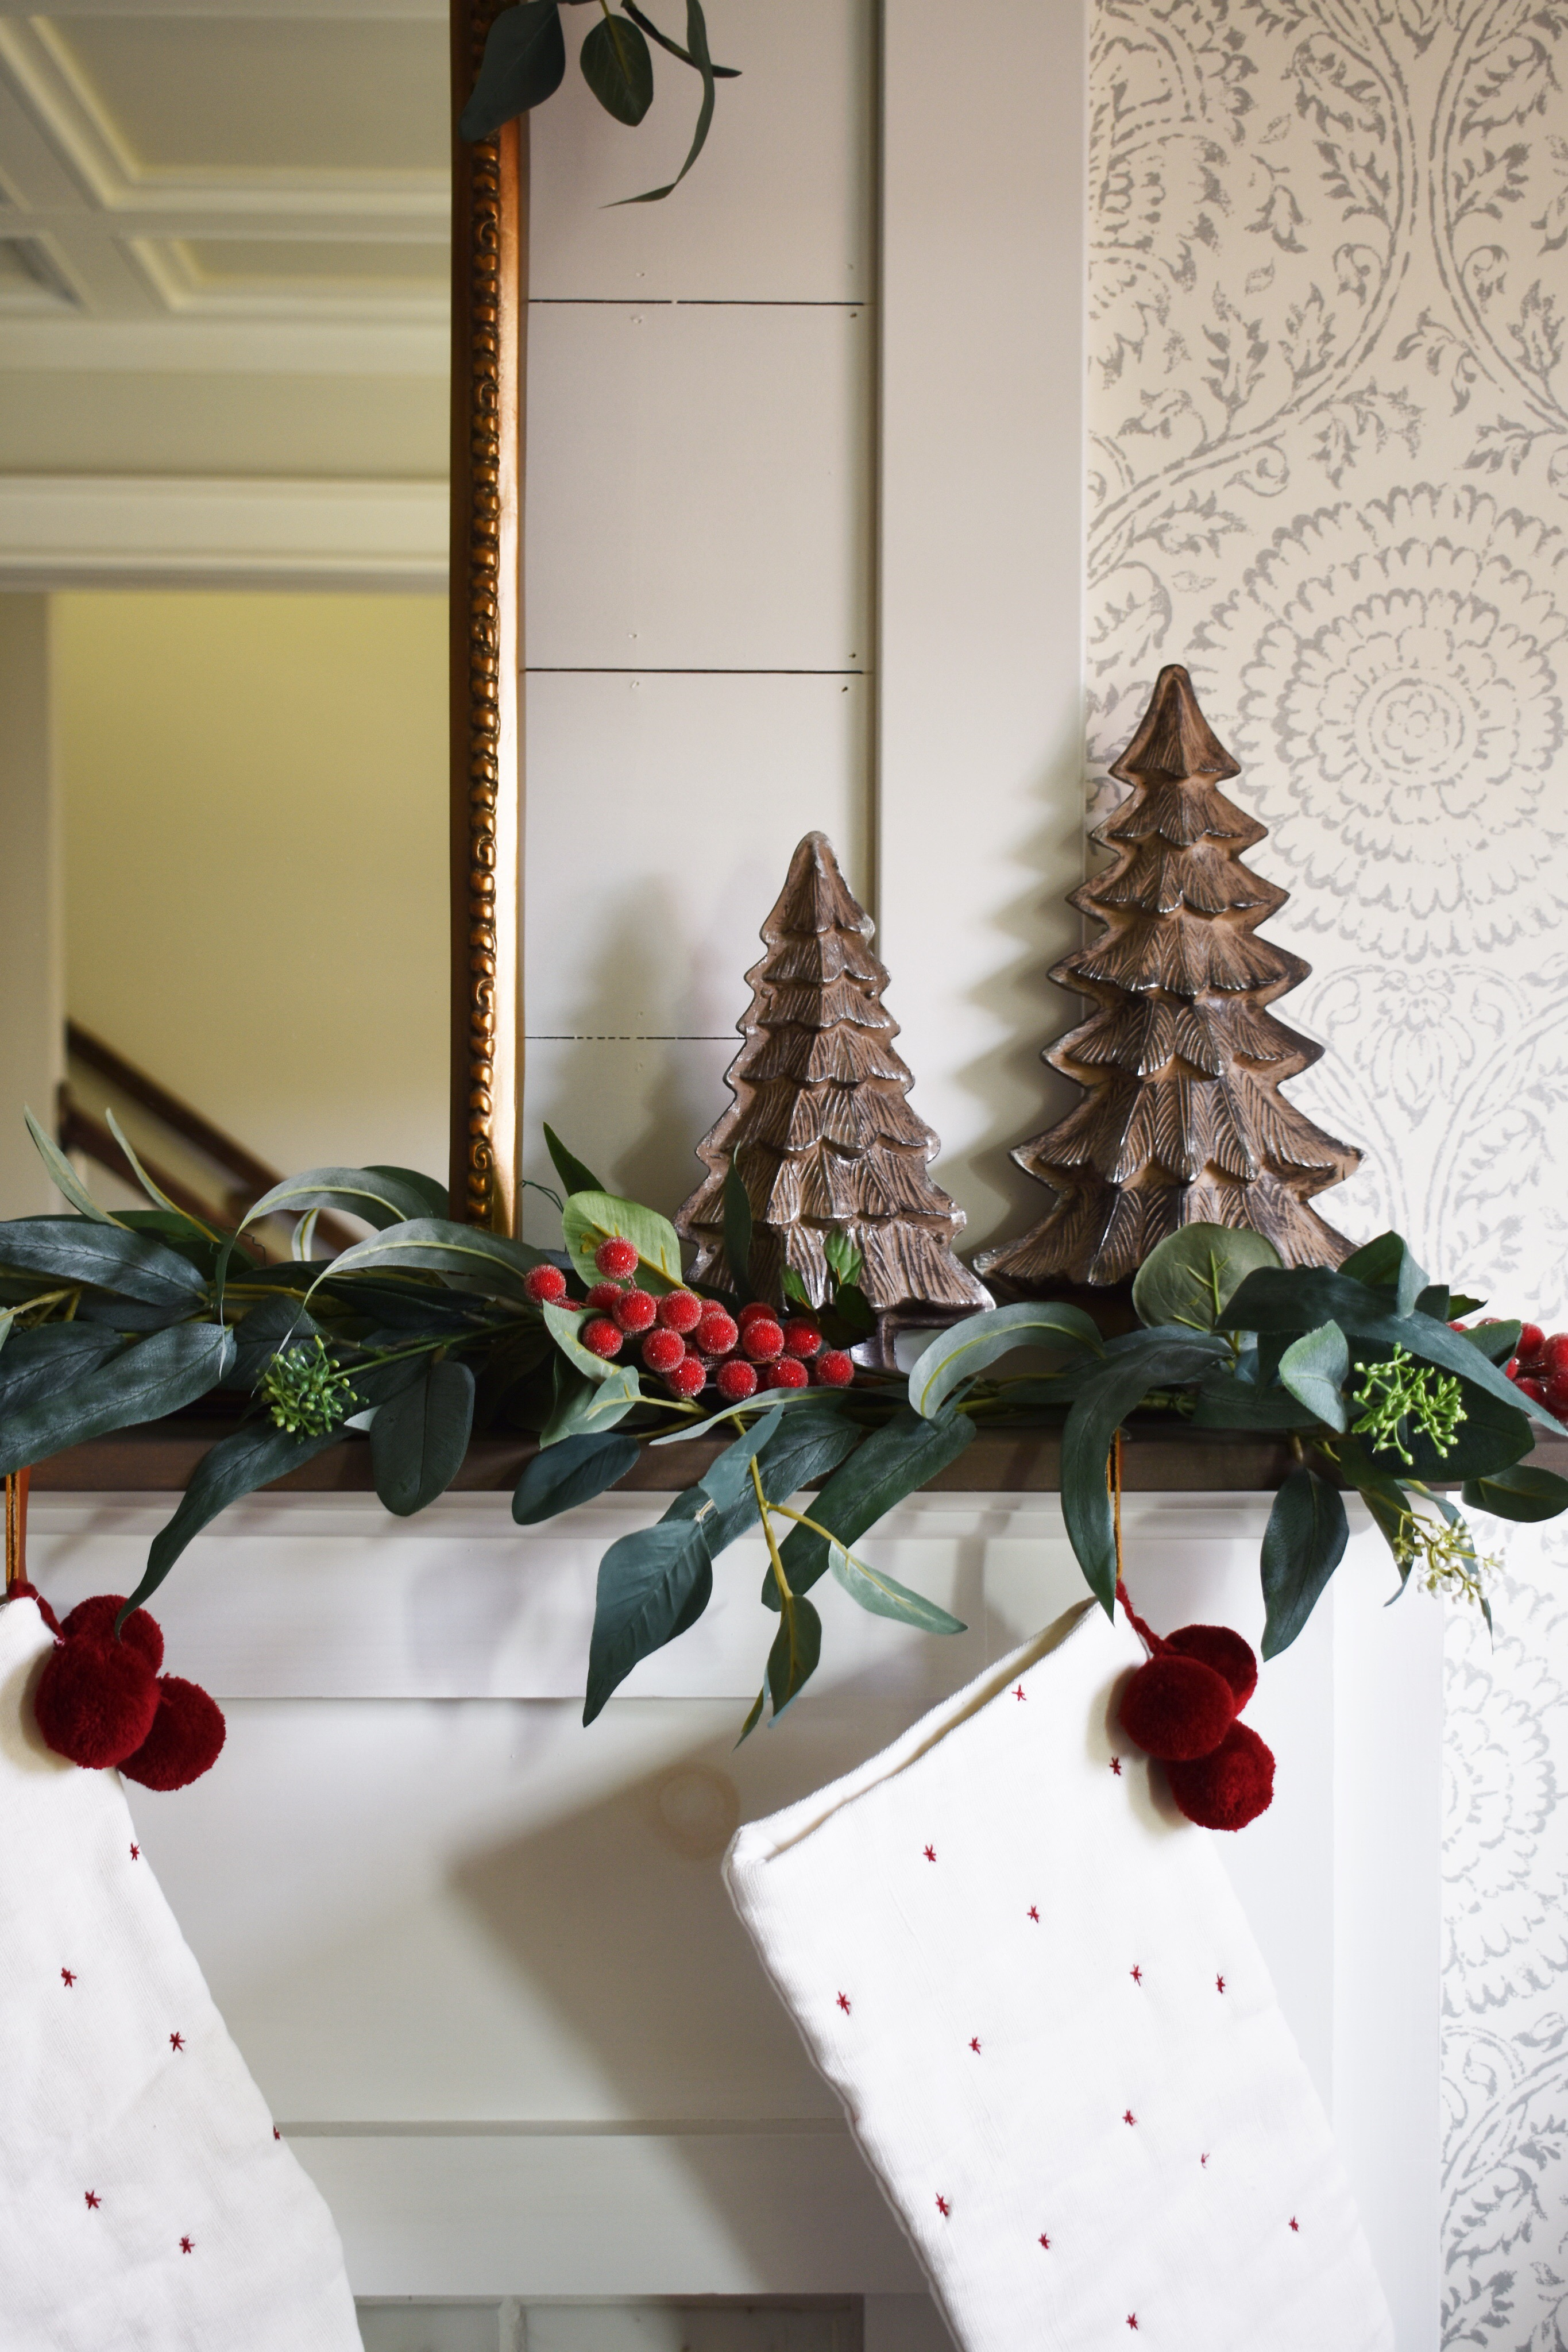 My simple formula for a Festive Fireplace